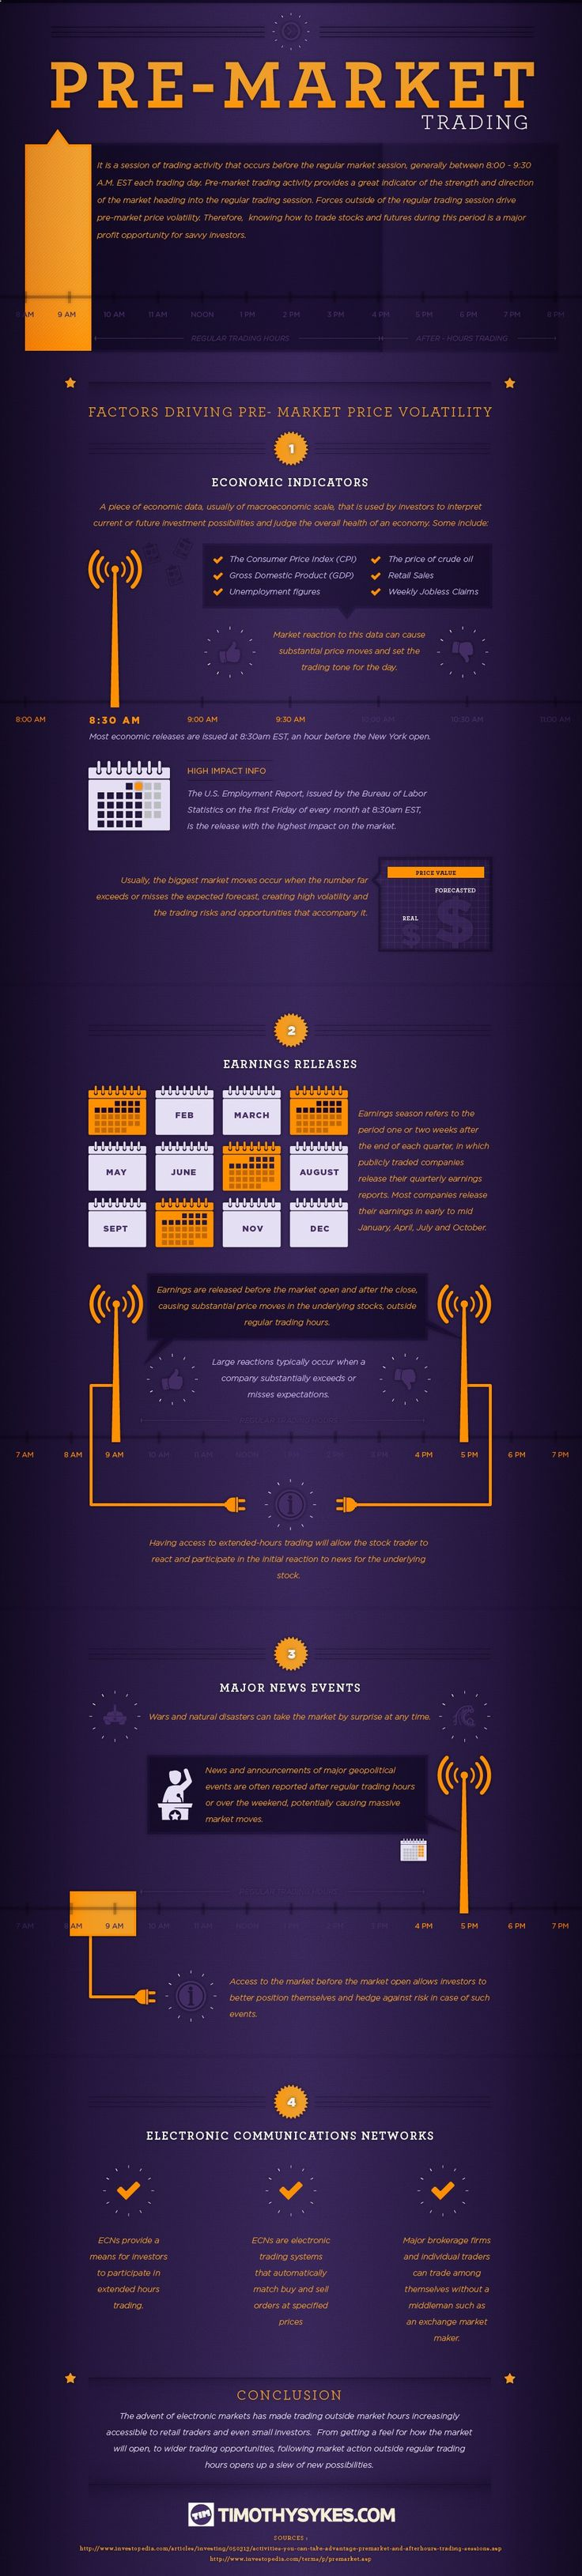 All About Pre-Market Trading - Visual Capitalist